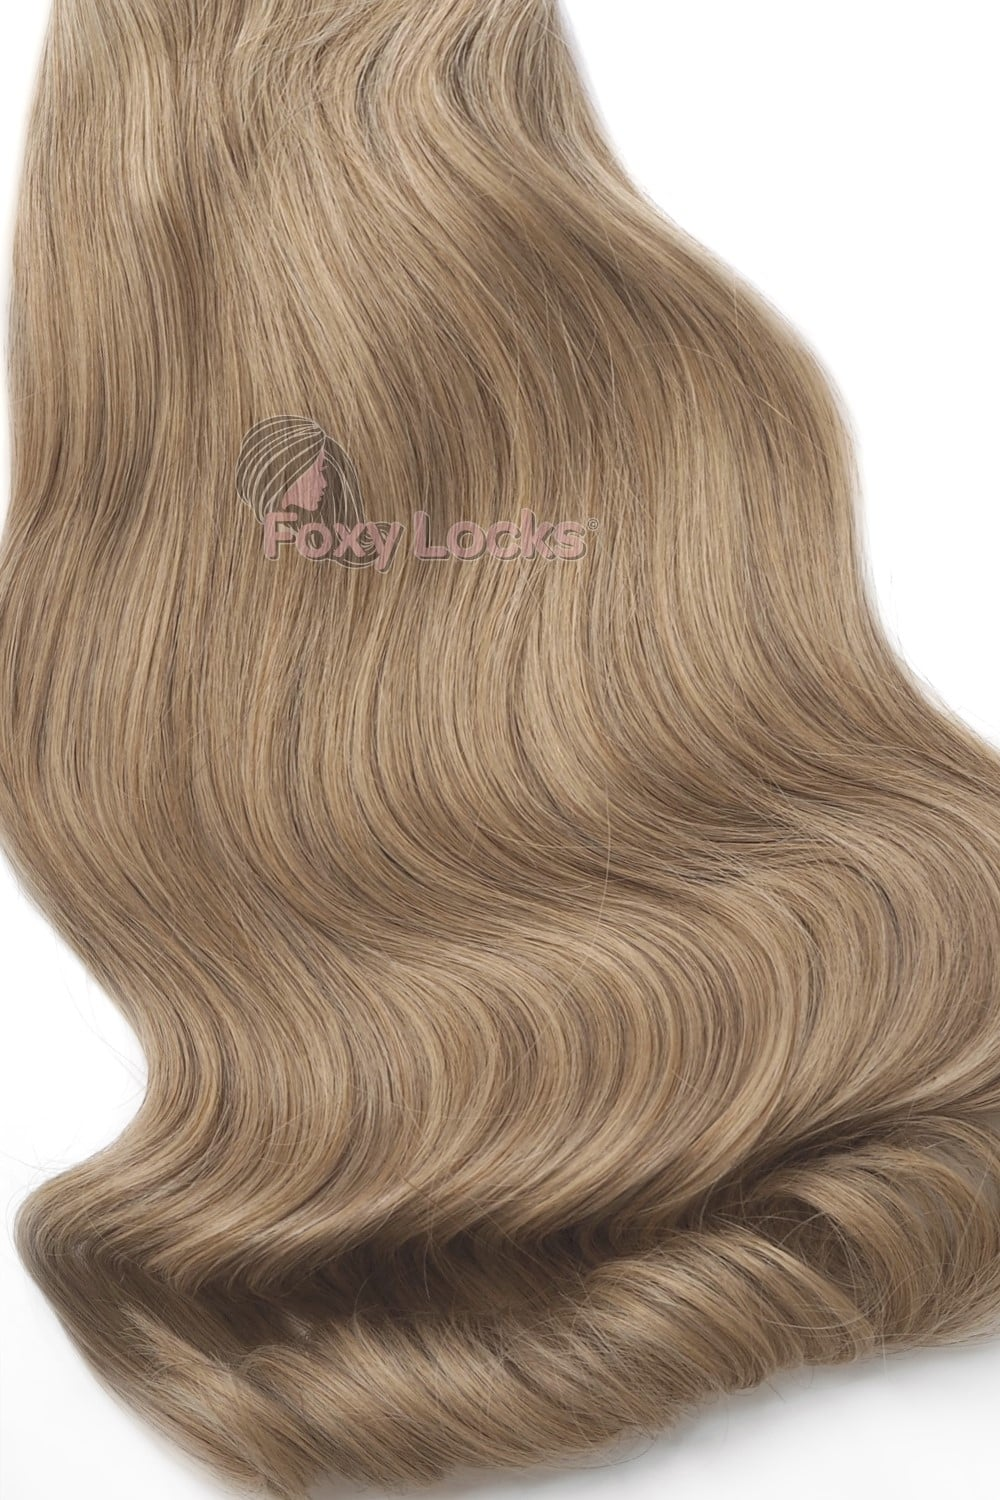 Caramel Blonde 20 Superior 20 Clip In Human Hair Extensions 230g